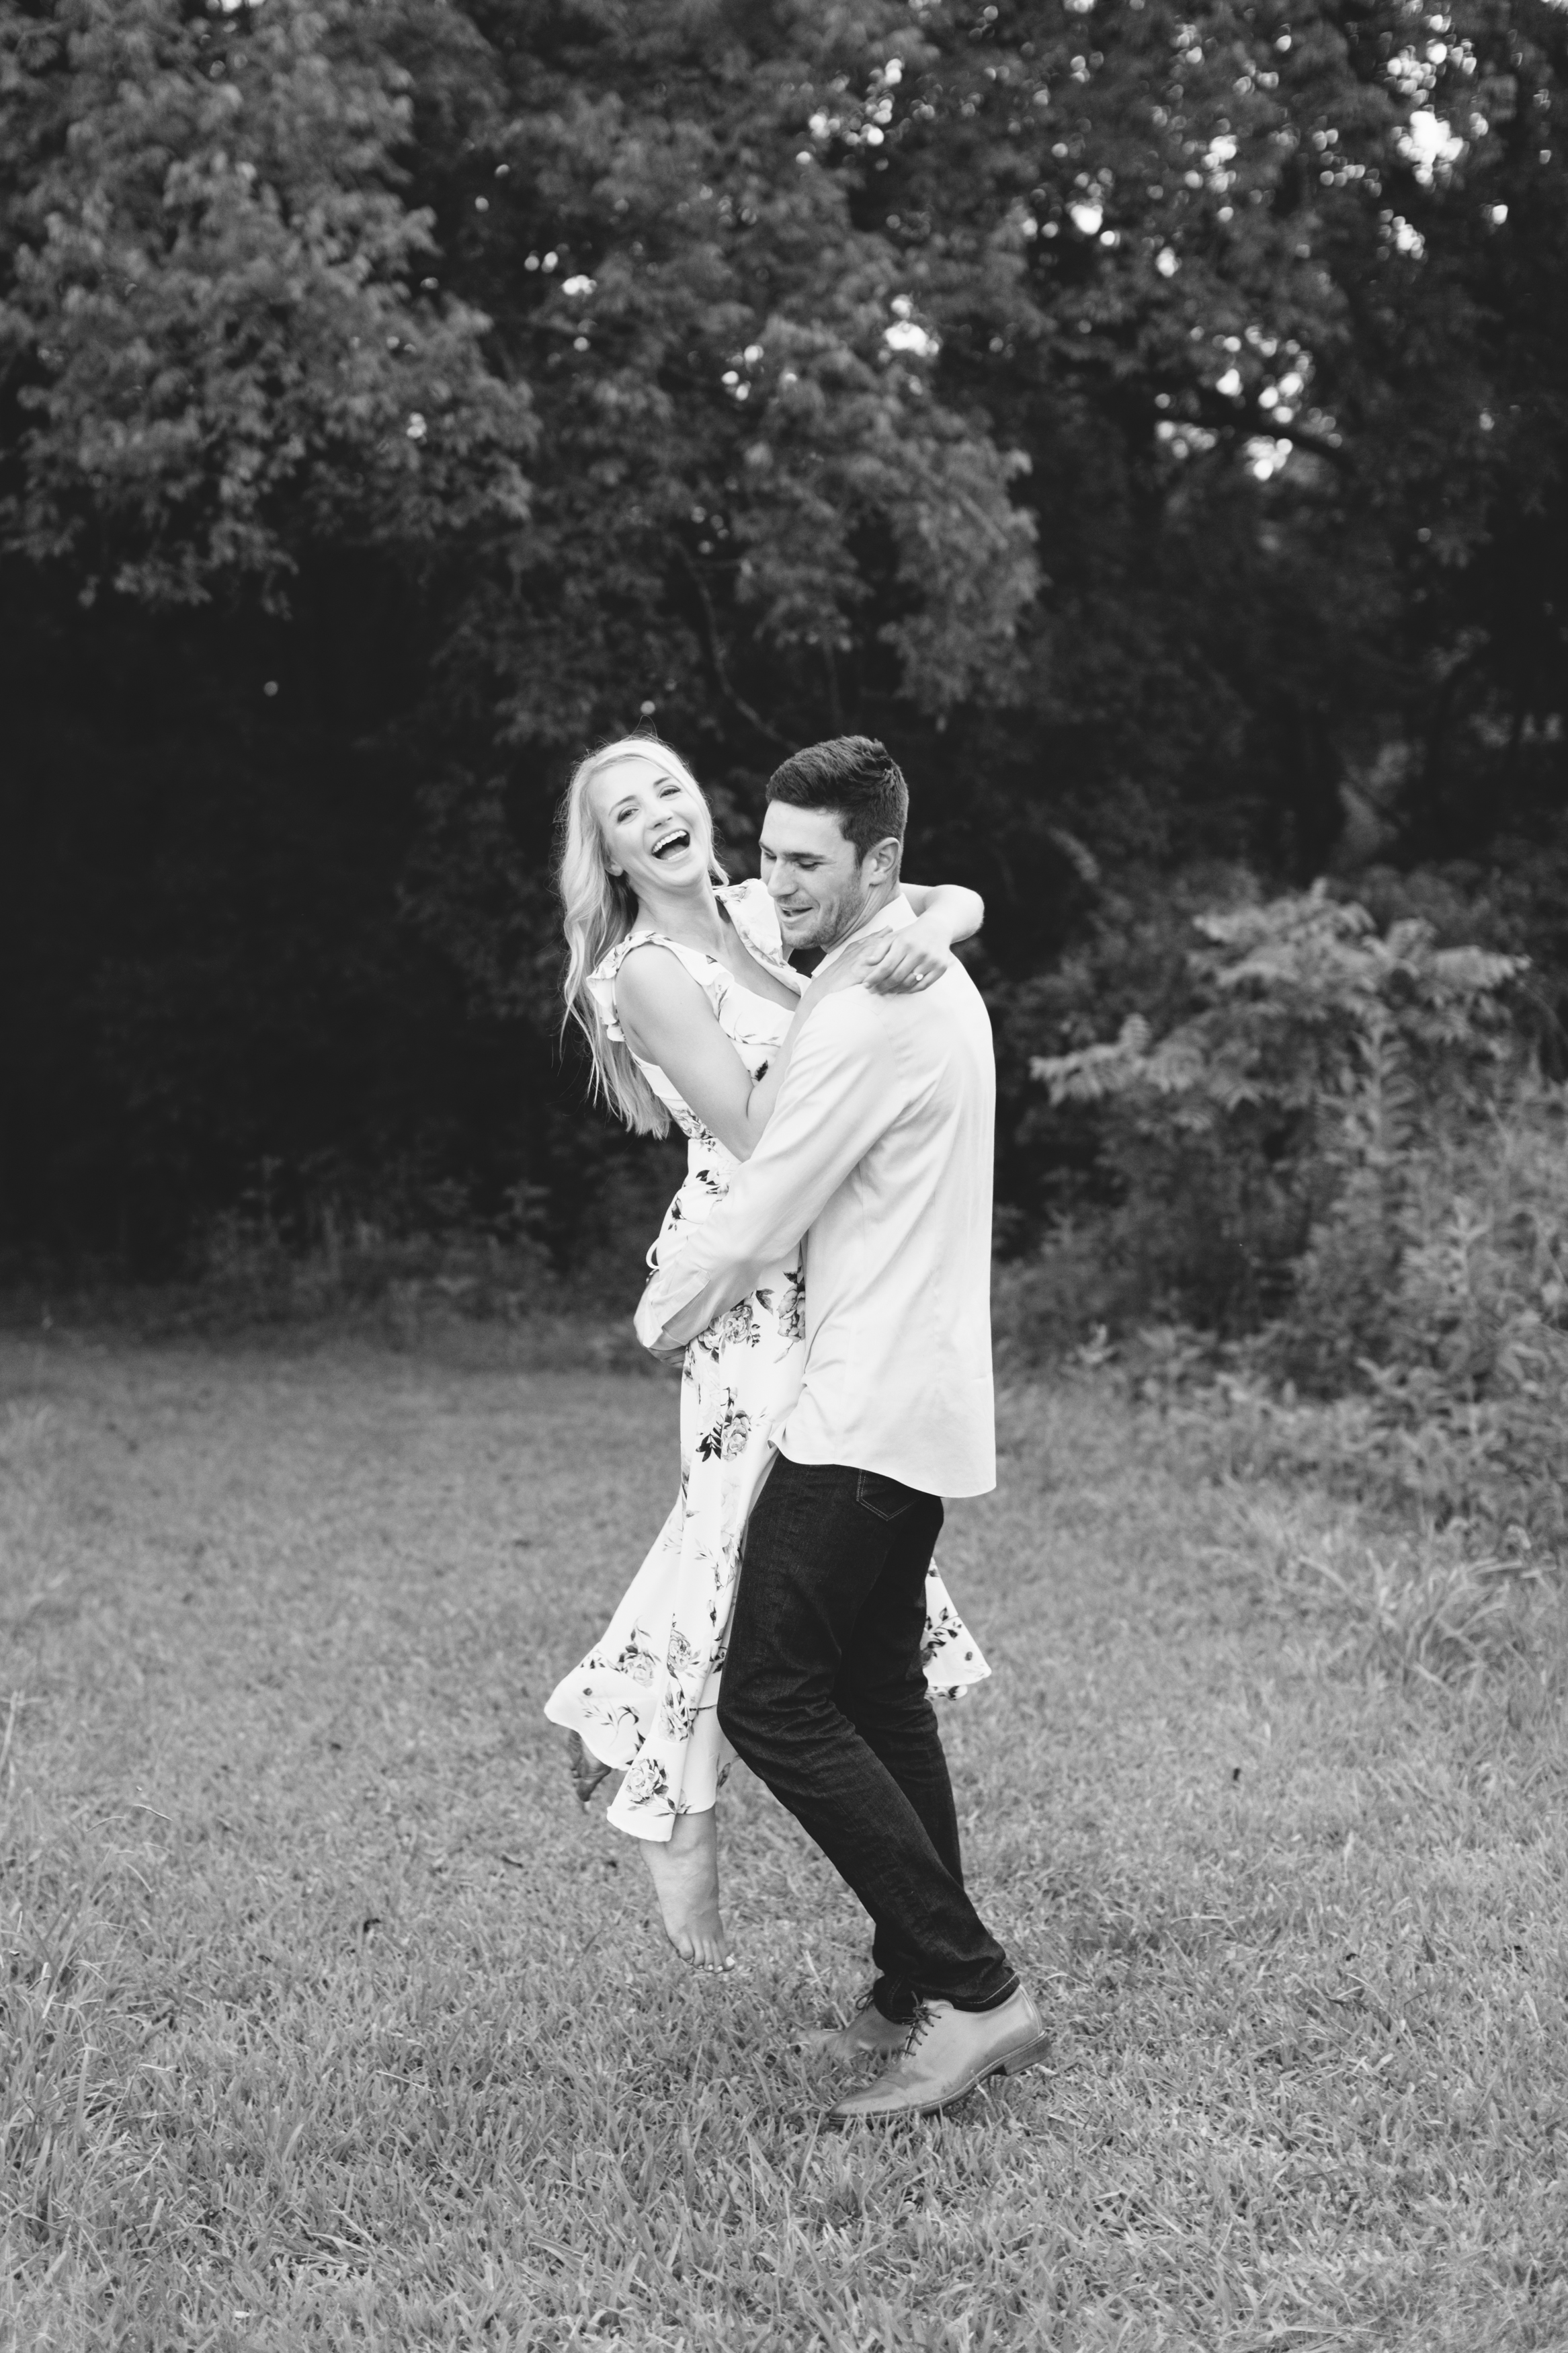 Marie_Perry_Engagement_Session_Abigail_malone_Photography-119.jpg